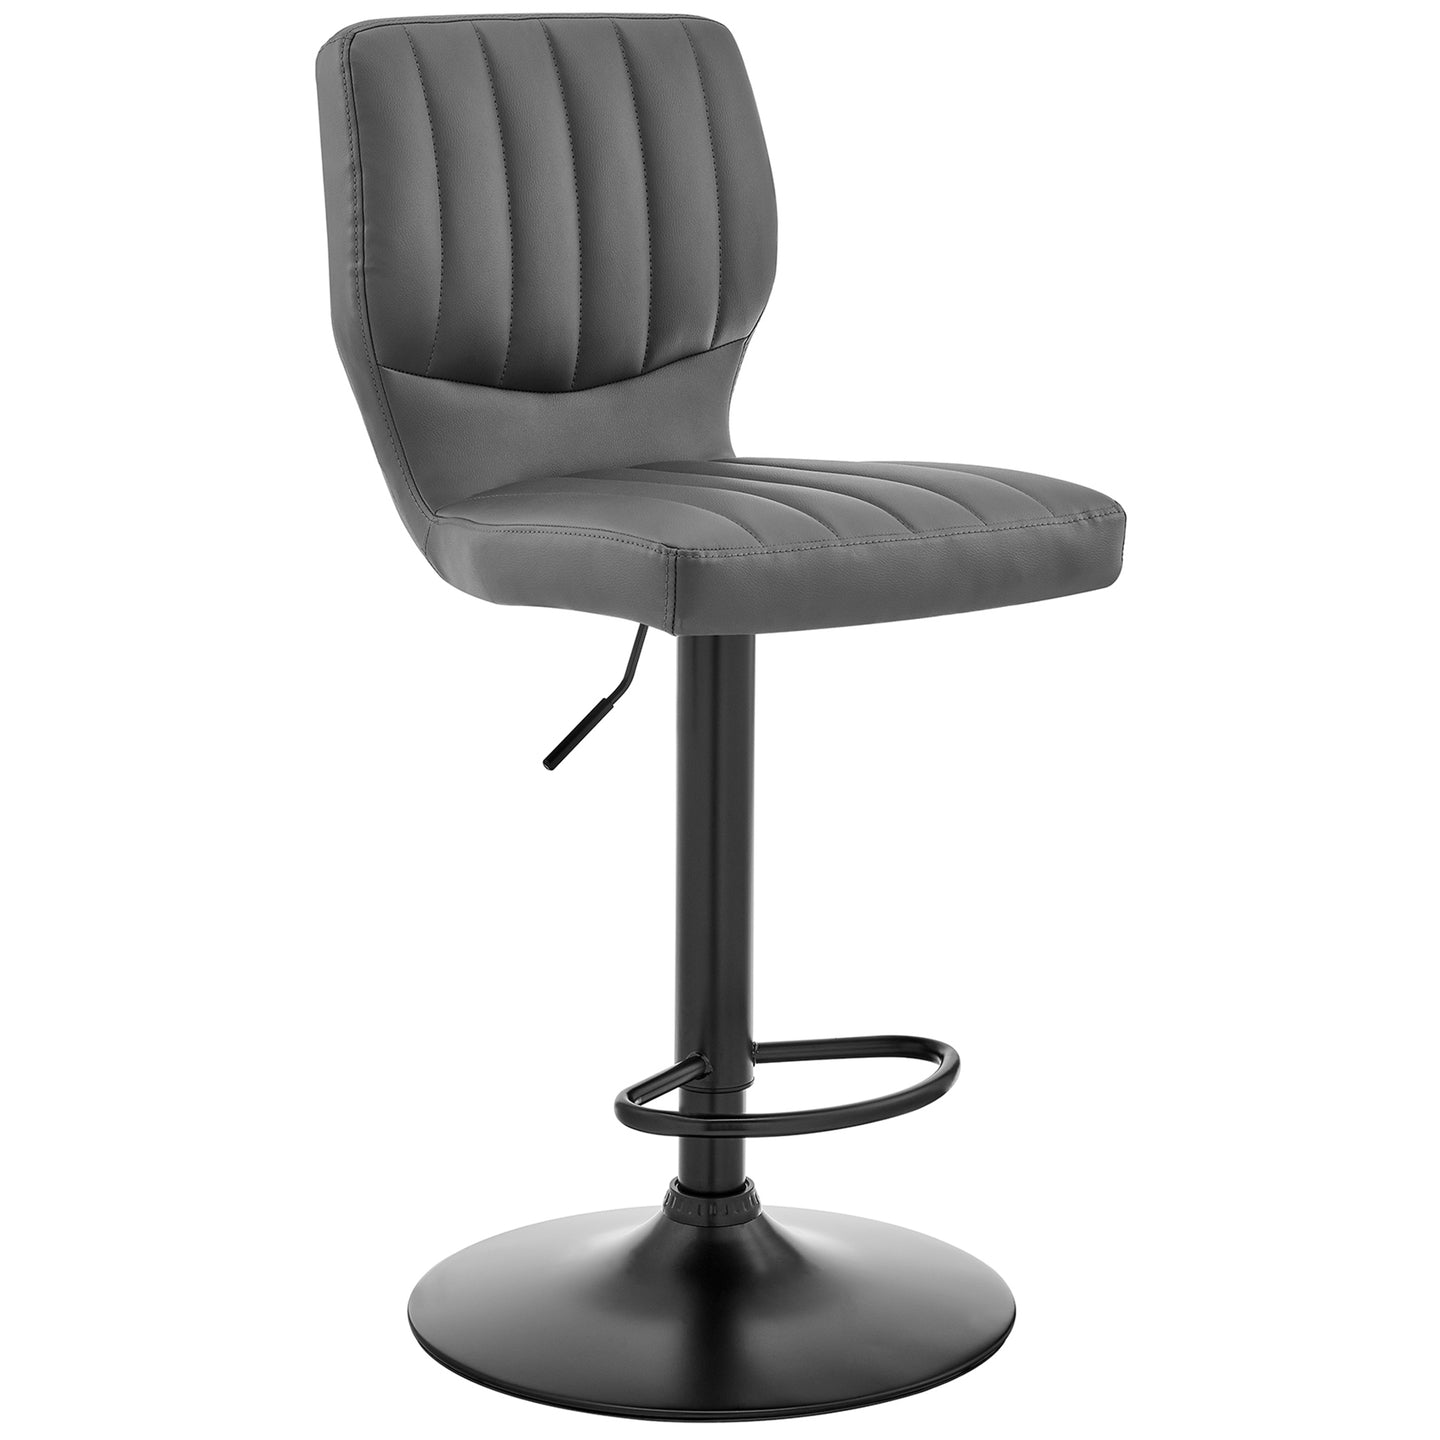 The Bardot Adjustable Gray Faux Leather Swivel Bar Stool